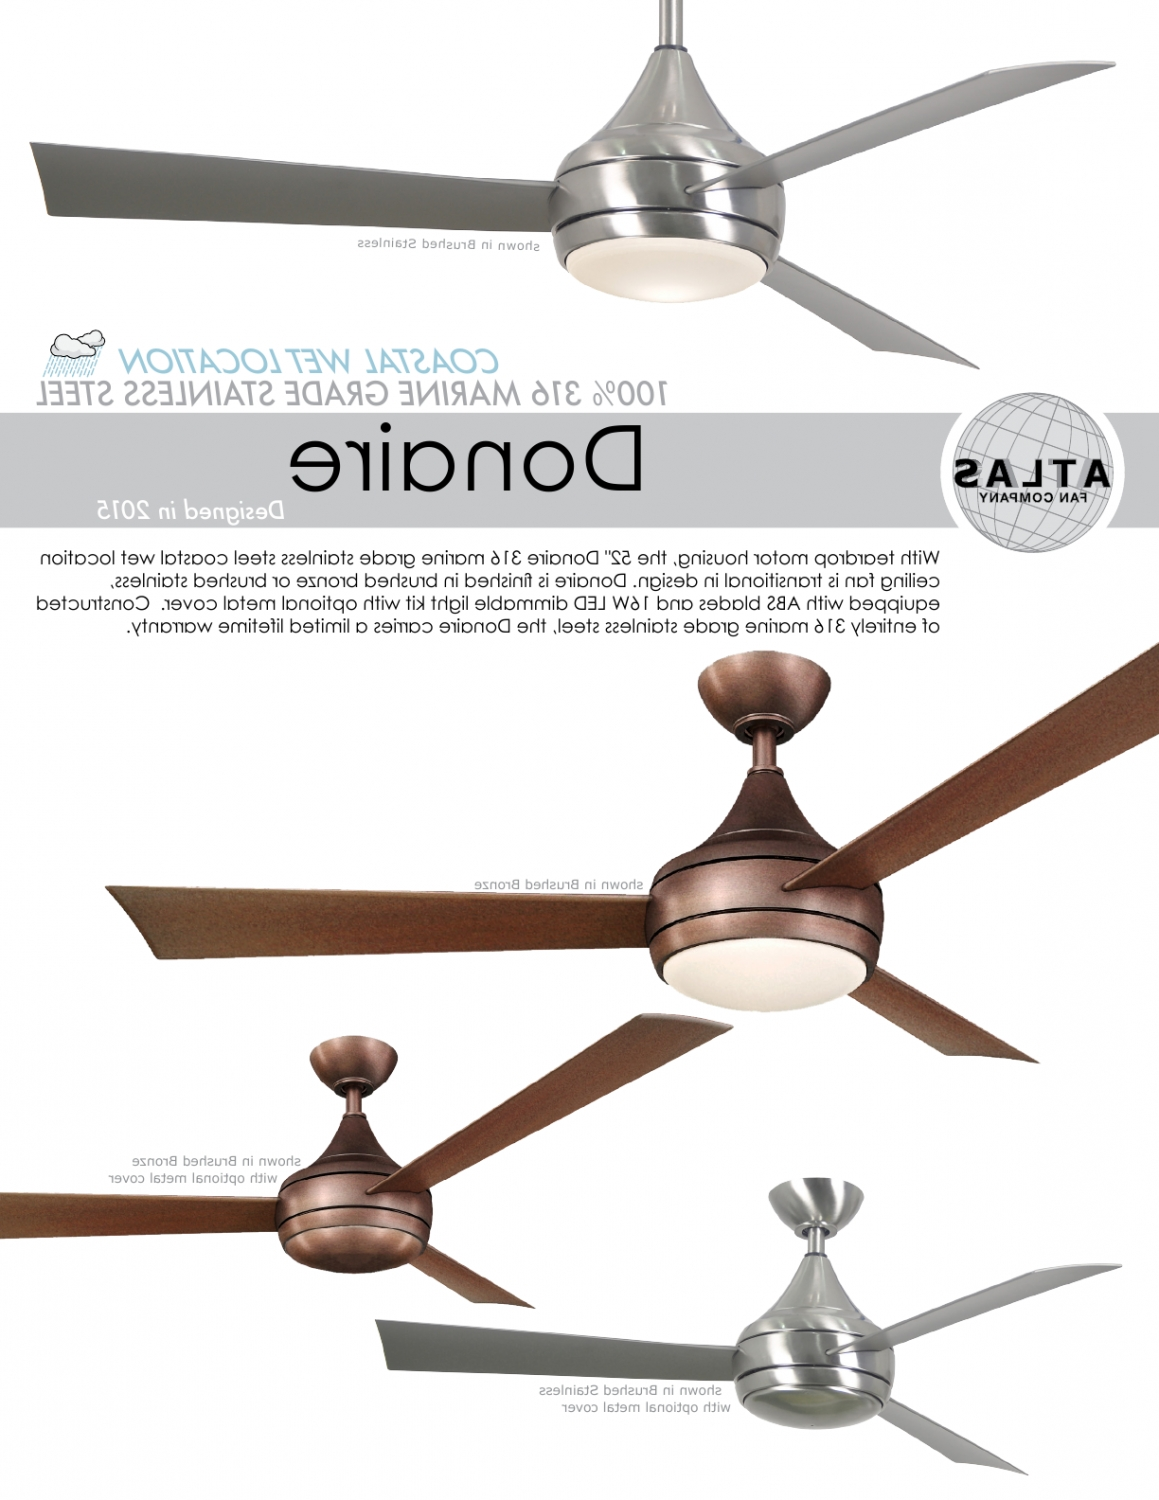 Stainless Steel Outdoor Ceiling Fans With Light In Most Recently Released Donaire Ceiling Fan For Balcony Terrace Verandah Outdoor Spaces (View 19 of 20)